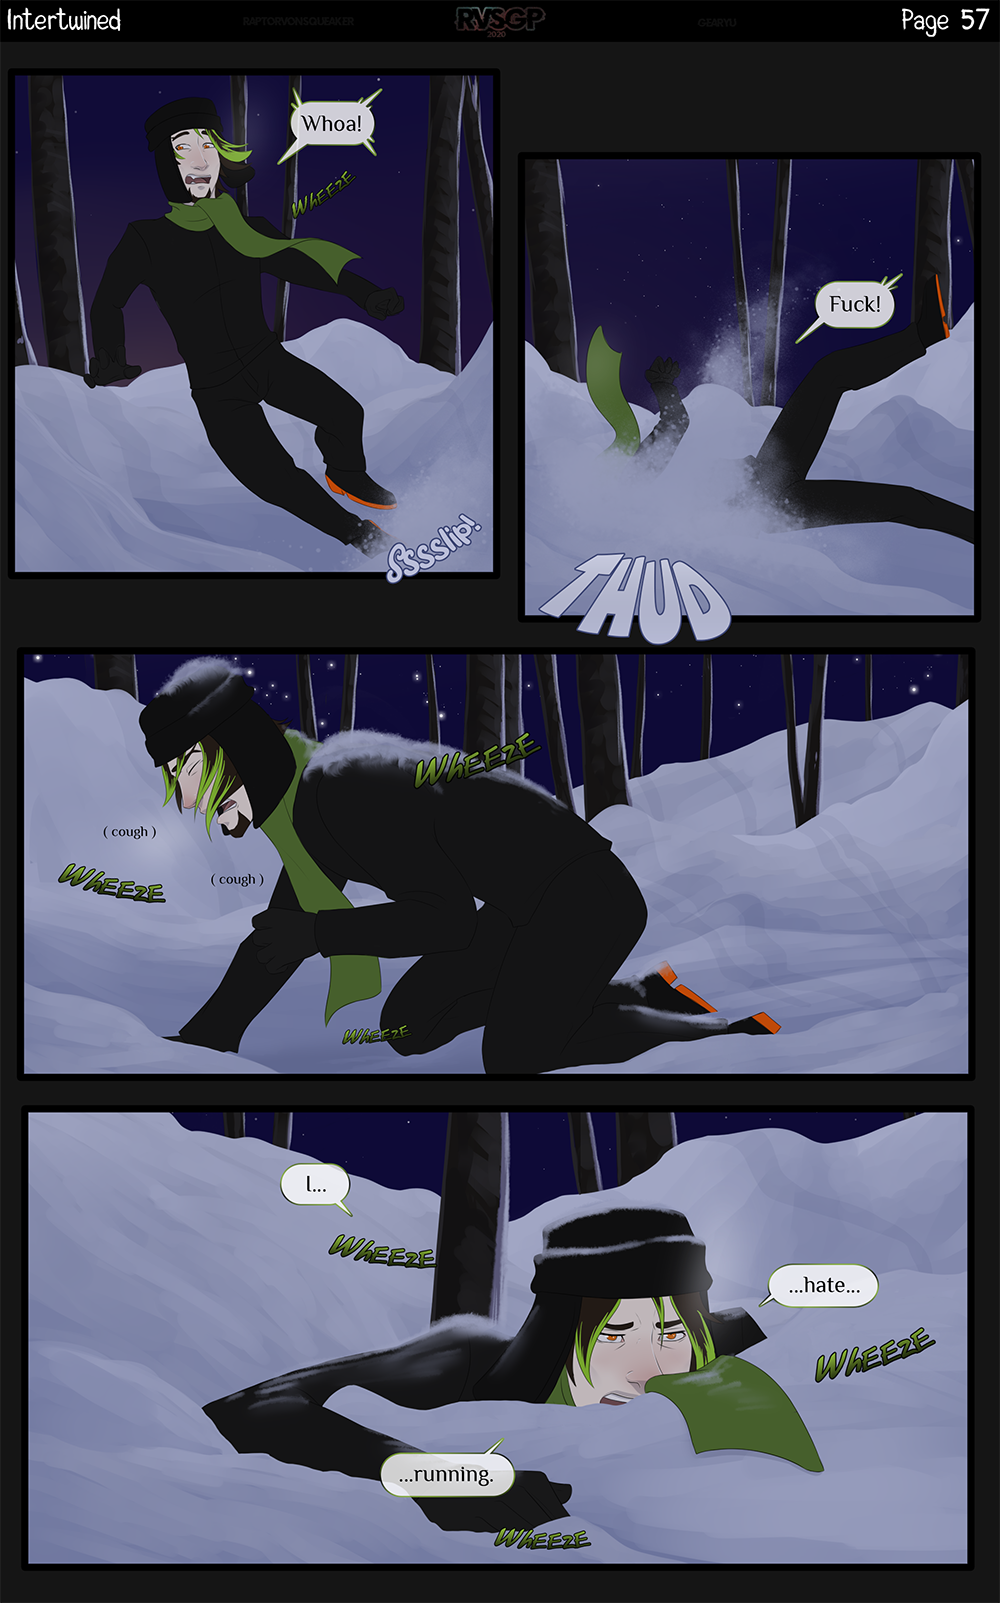 Page 57 - Wheeze.